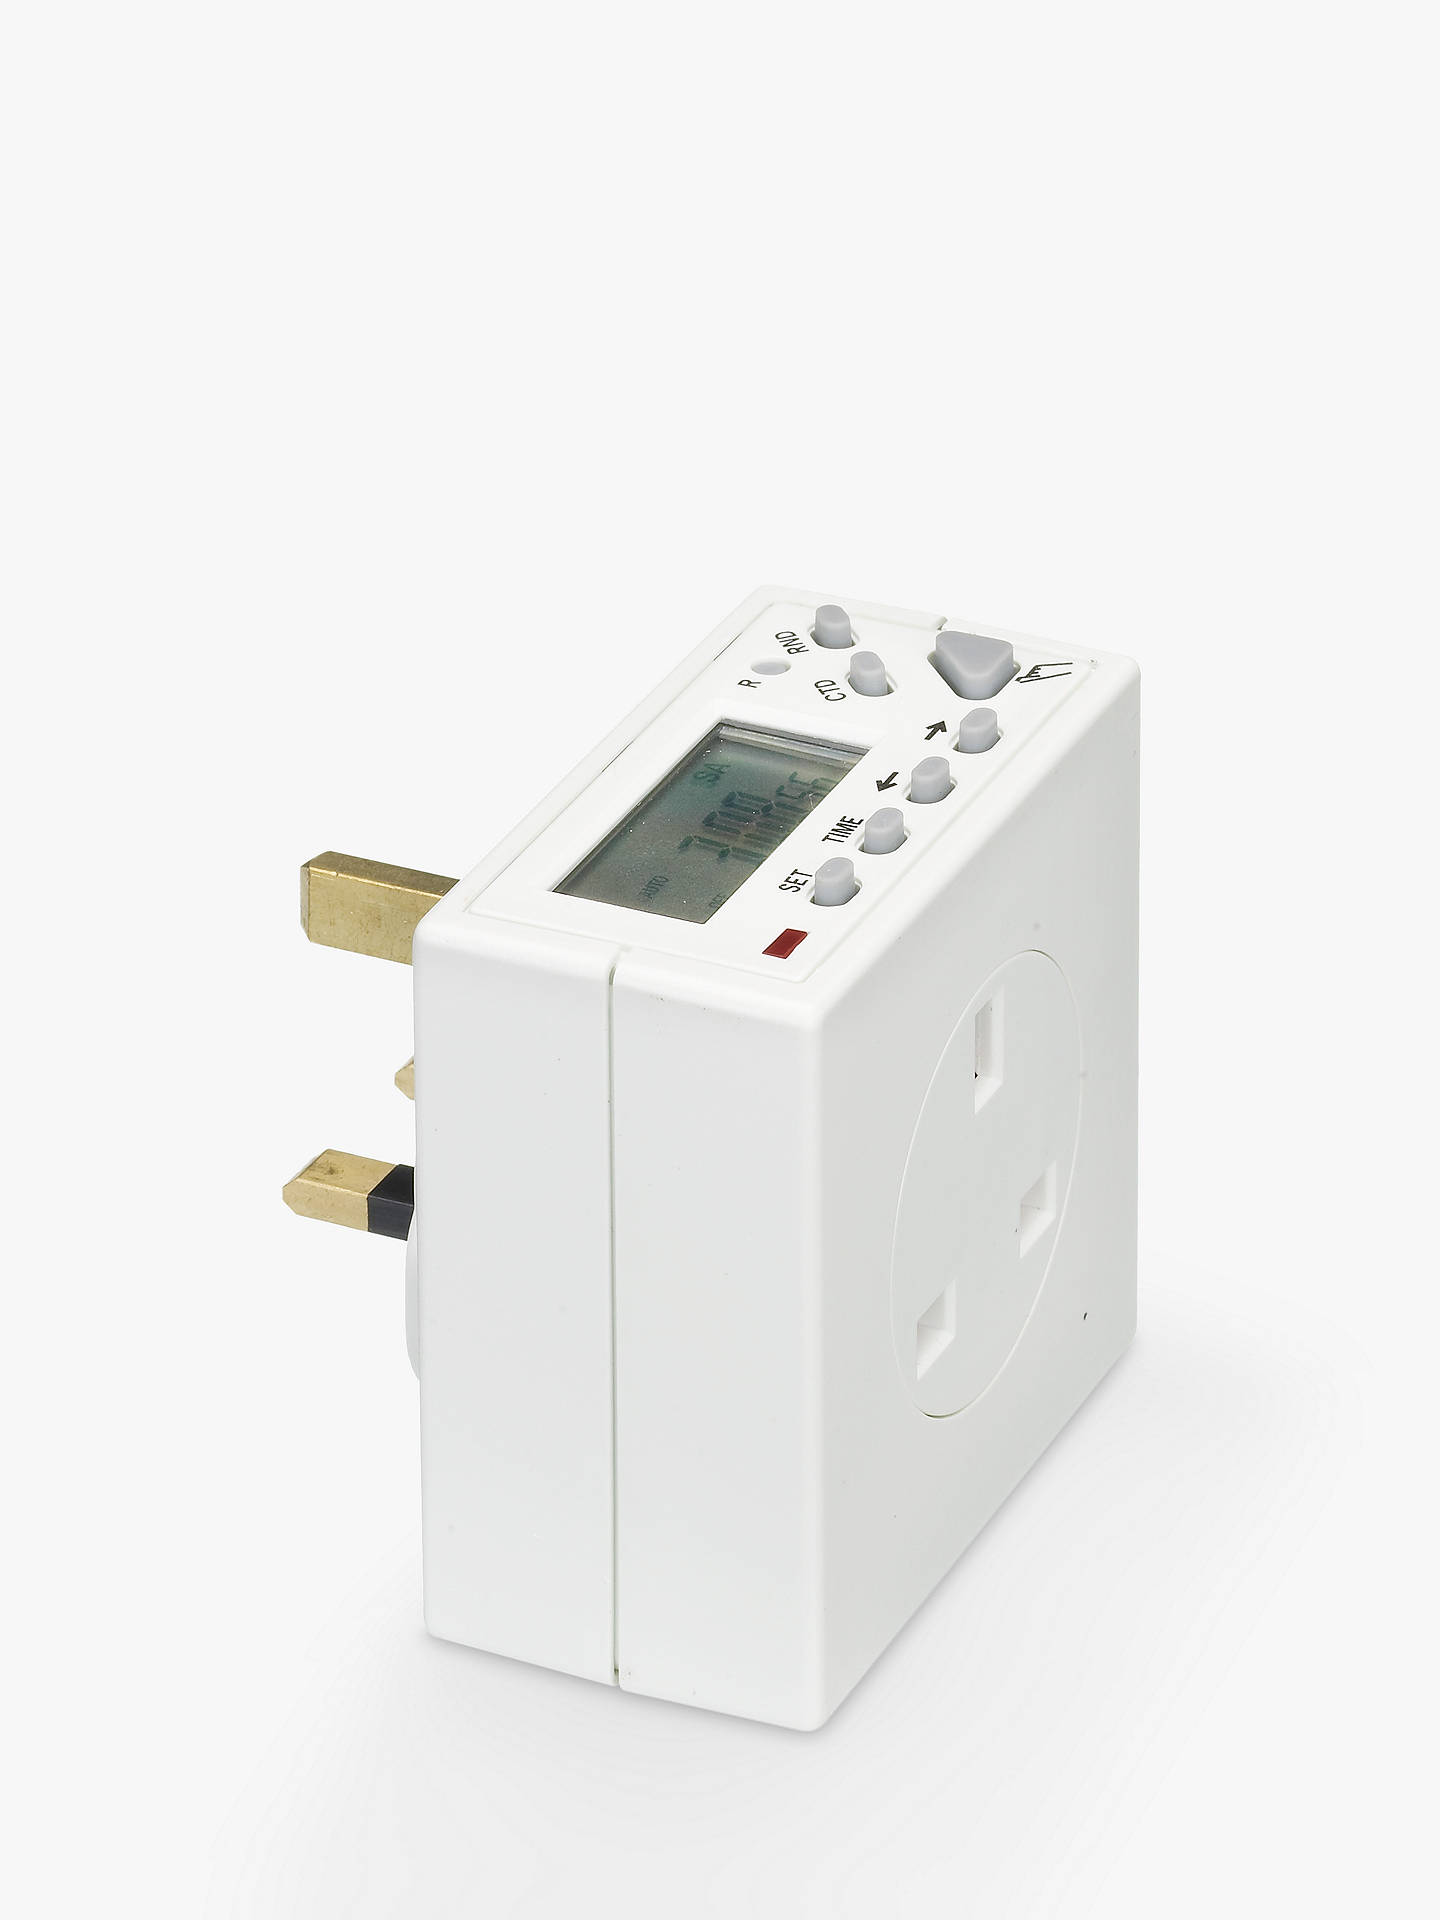 Buy Time Guard Ltd 24 Hour/7 Day Electronic Timeswitch Online at johnlewis.com